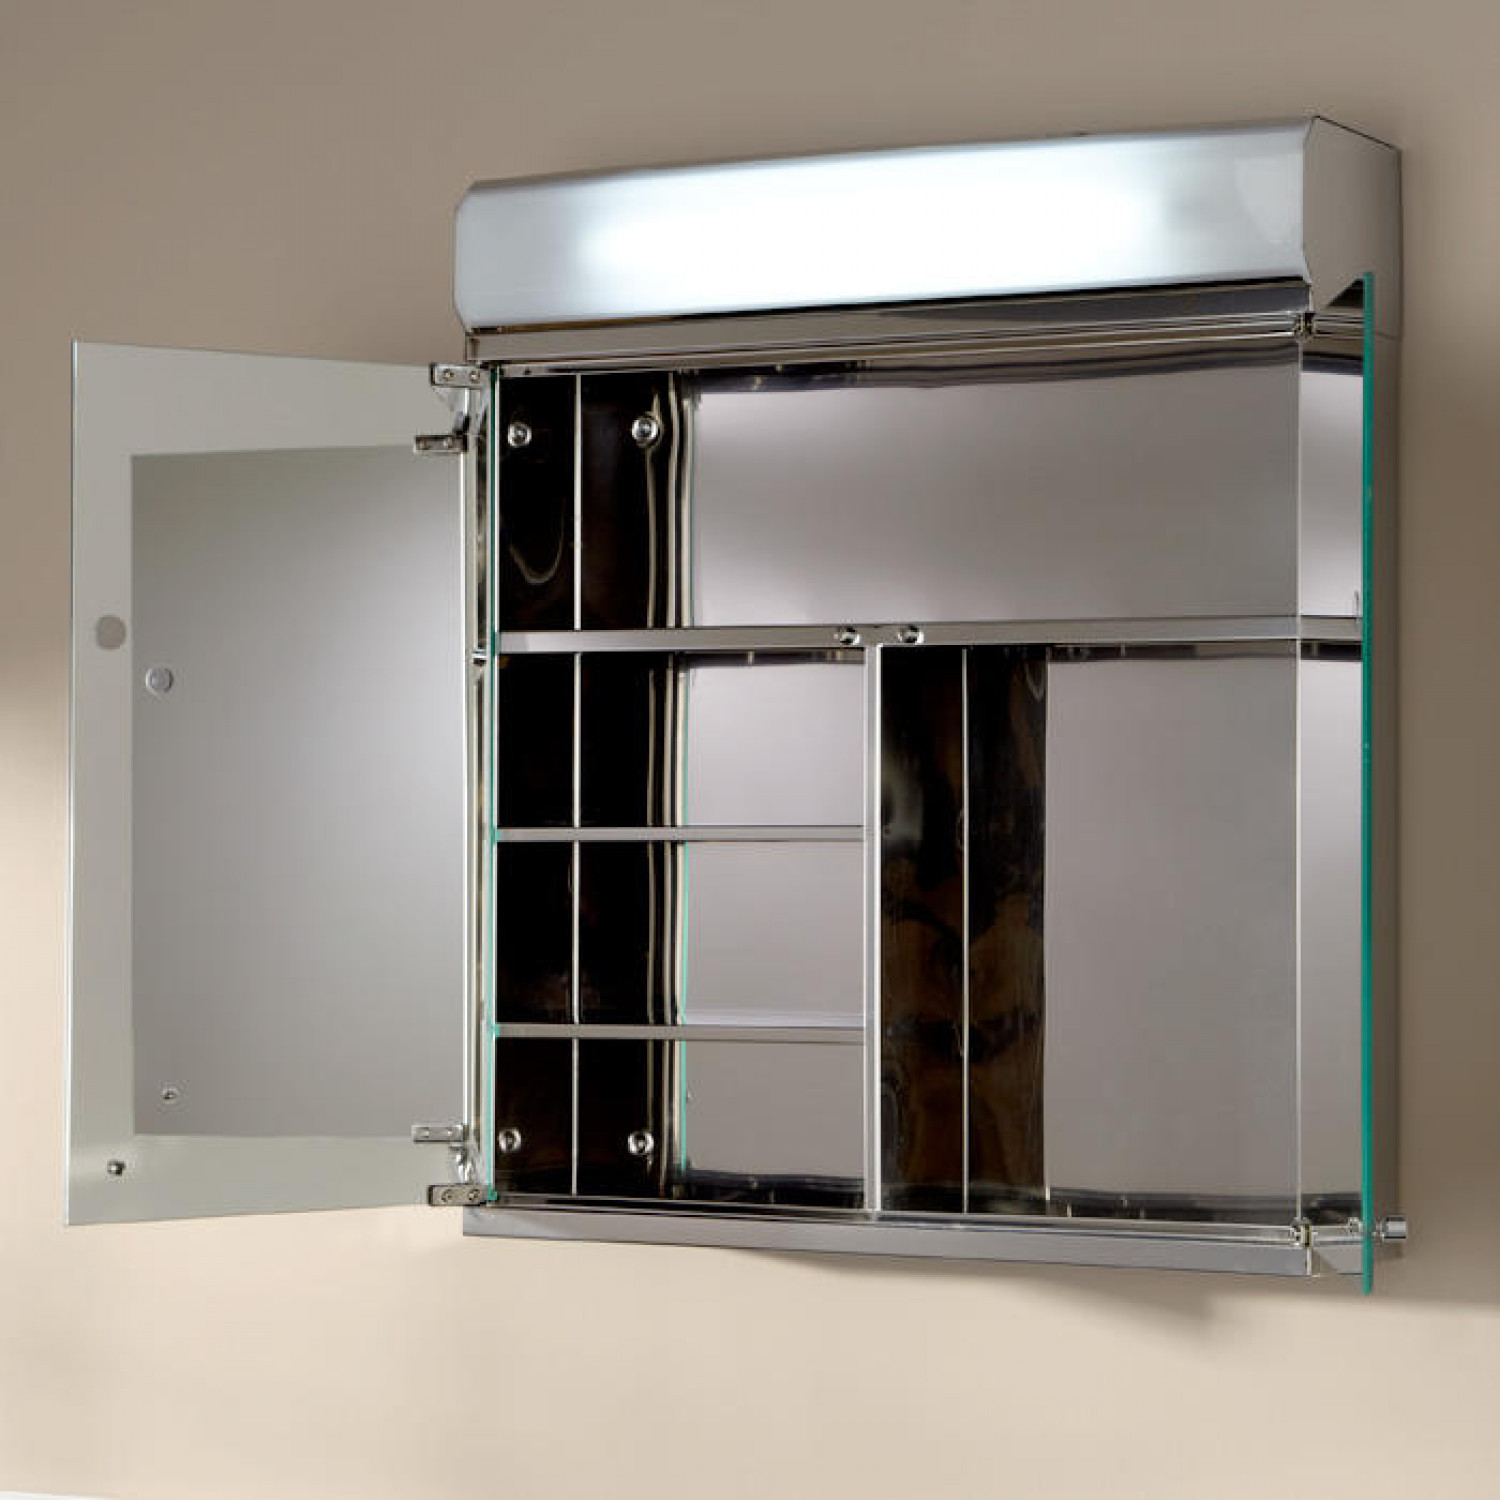 Best ideas about Lighted Medicine Cabinet . Save or Pin Delview Stainless Steel Medicine Cabinet with Lighted Now.